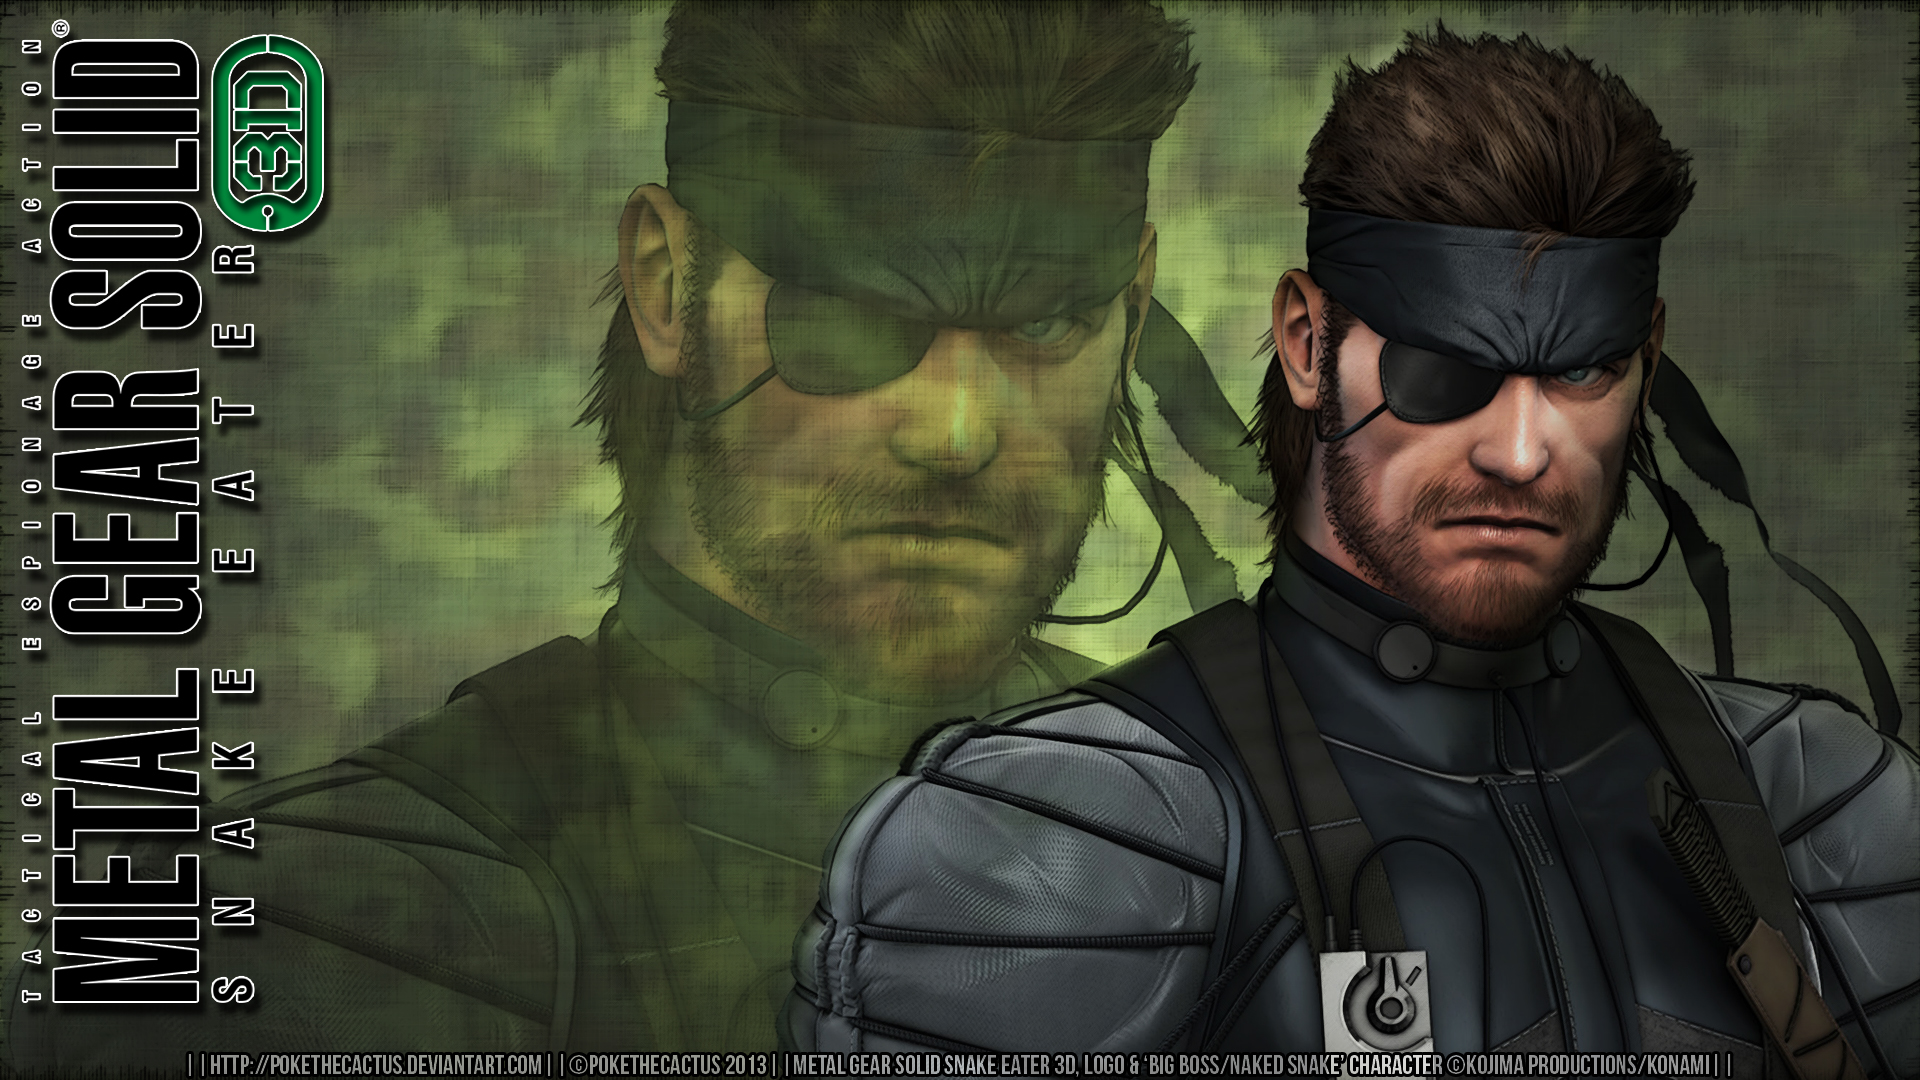 Big Boss Mgs3d Hd Wallpaper By Pokethecactus On Deviantart